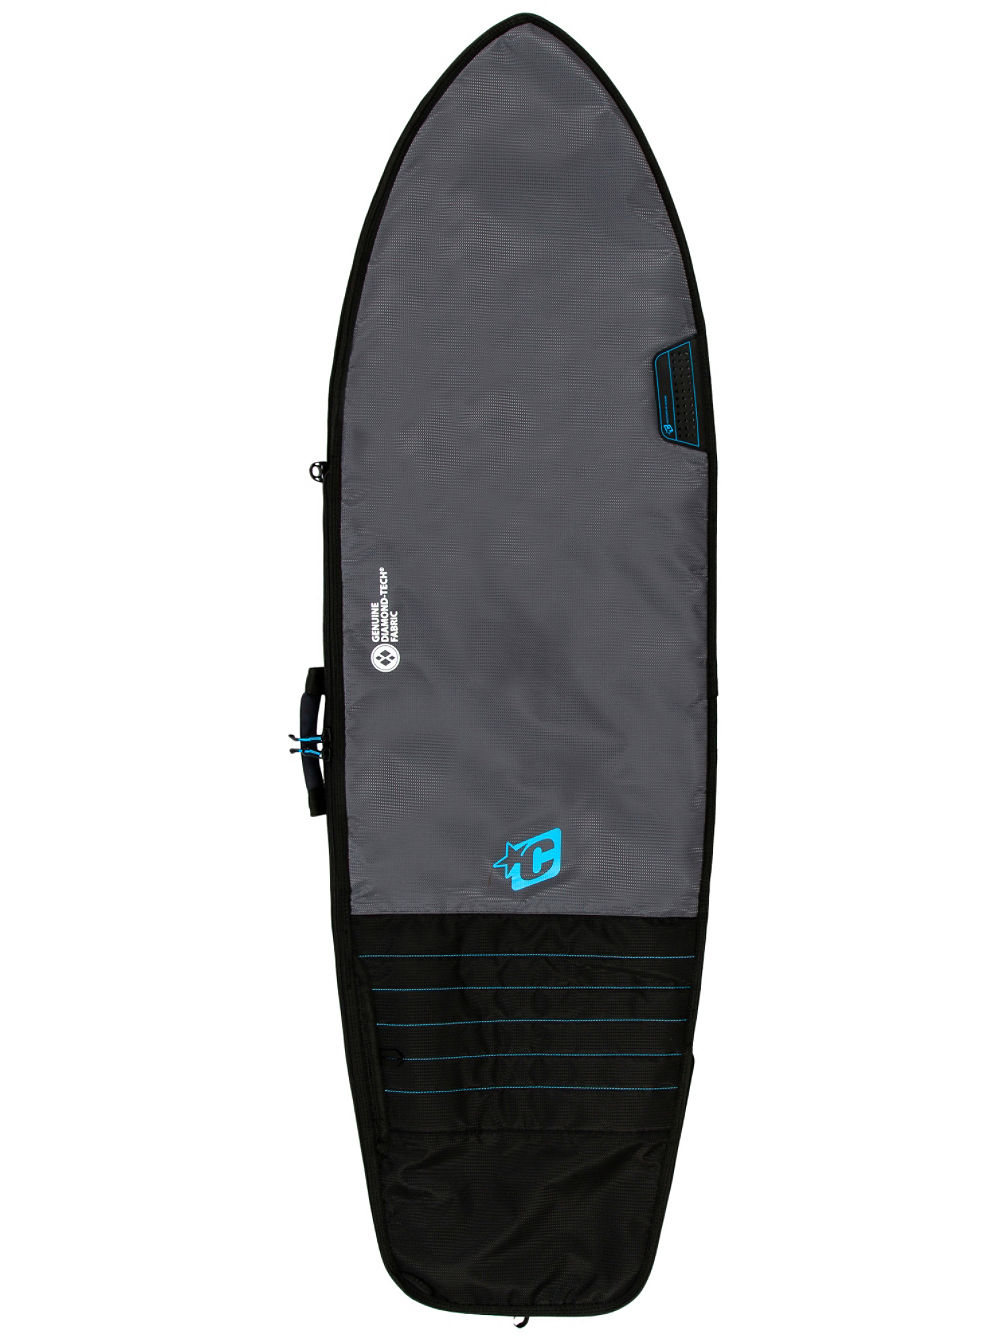 Fish Day Use 7'1 Surfboard Bag